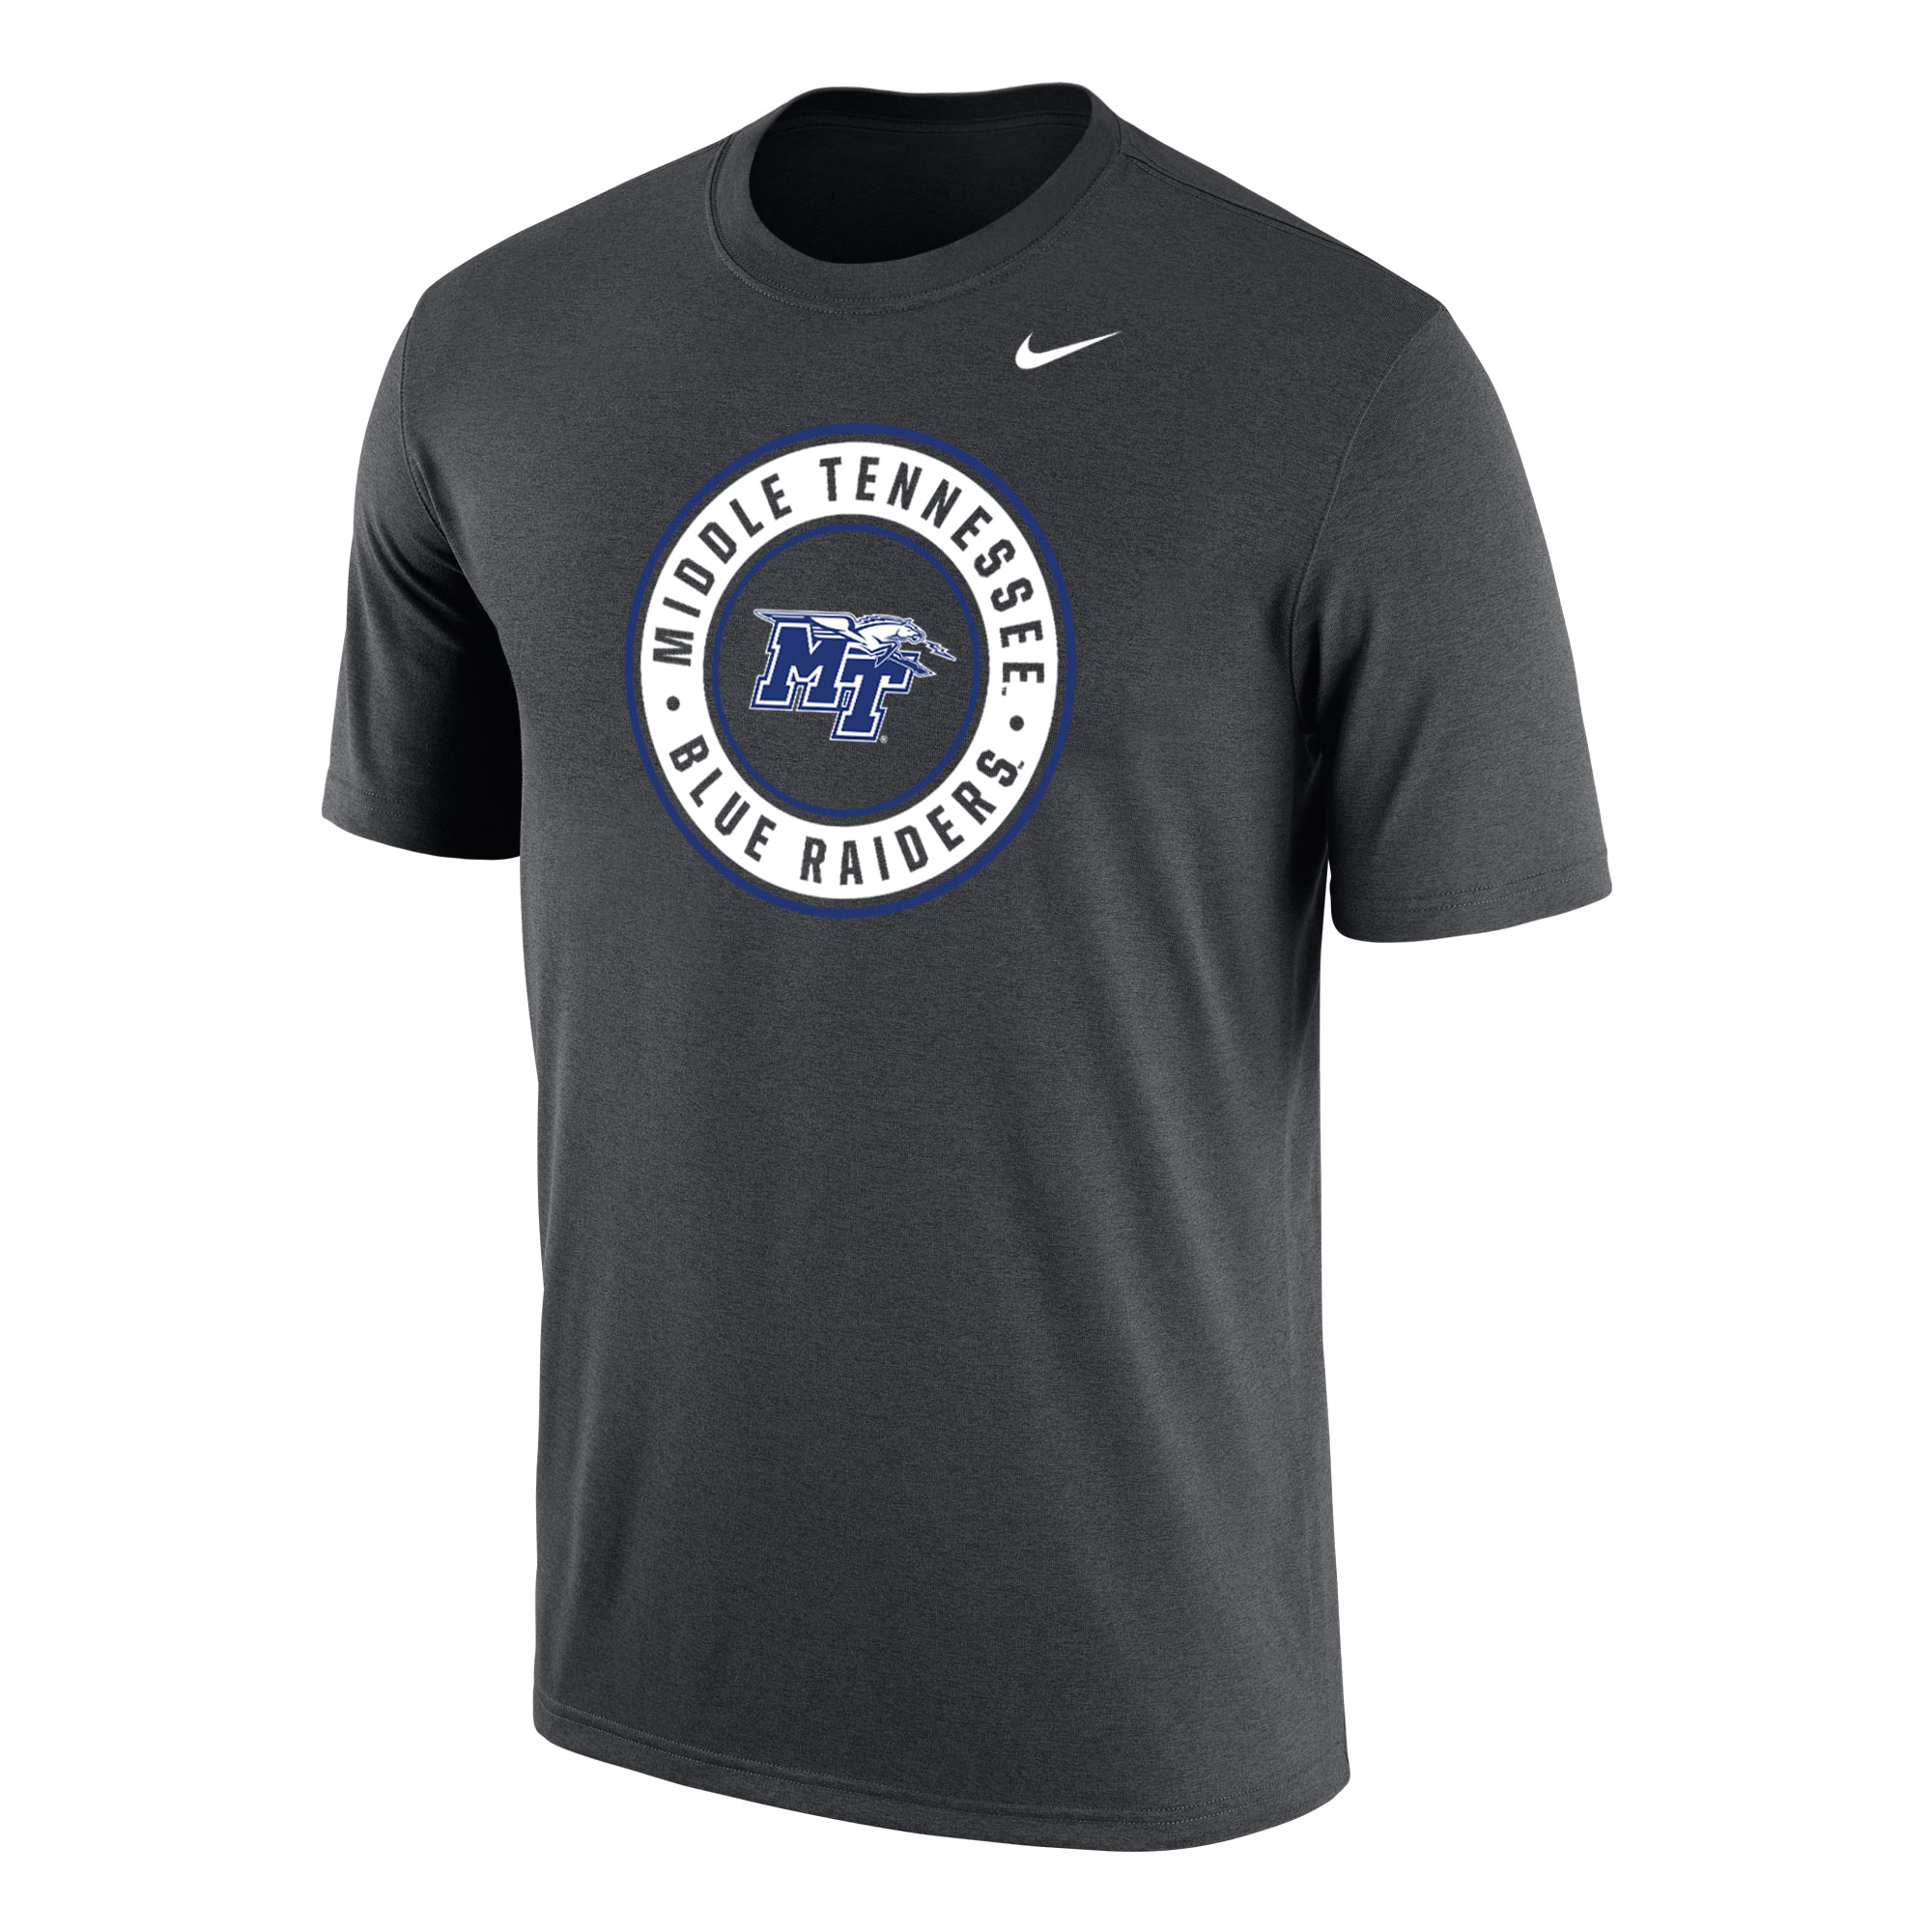 Middle Tennessee Blue Raiders Circle Nike® Dri-Fit Cotton Shirt